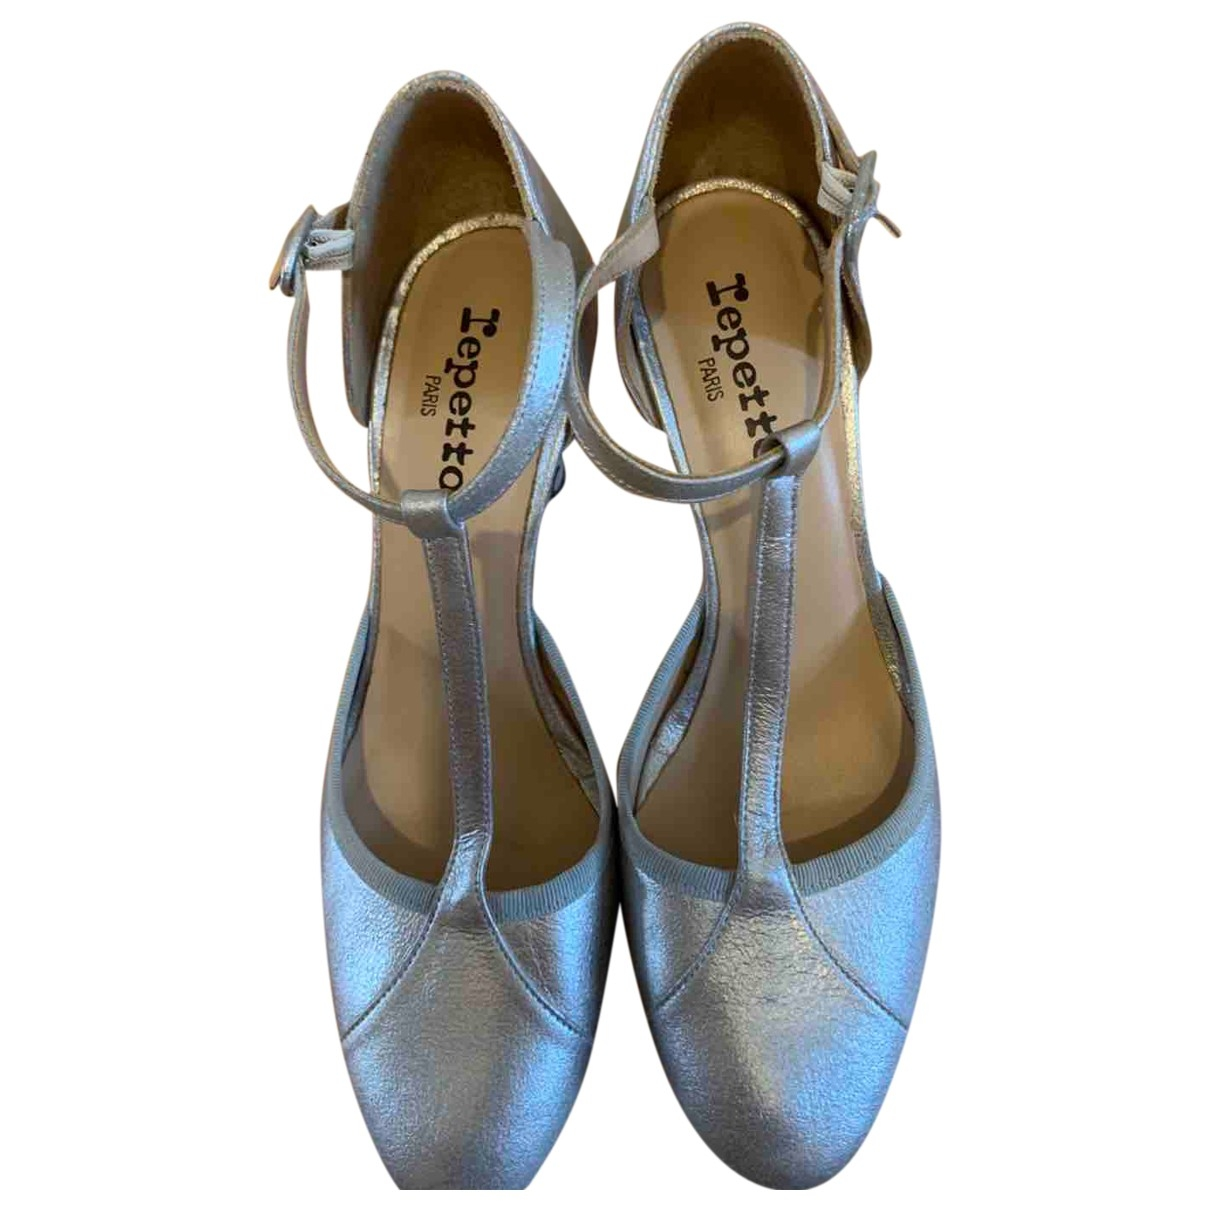 Repetto \N Silver Leather Heels for Women 39 EU